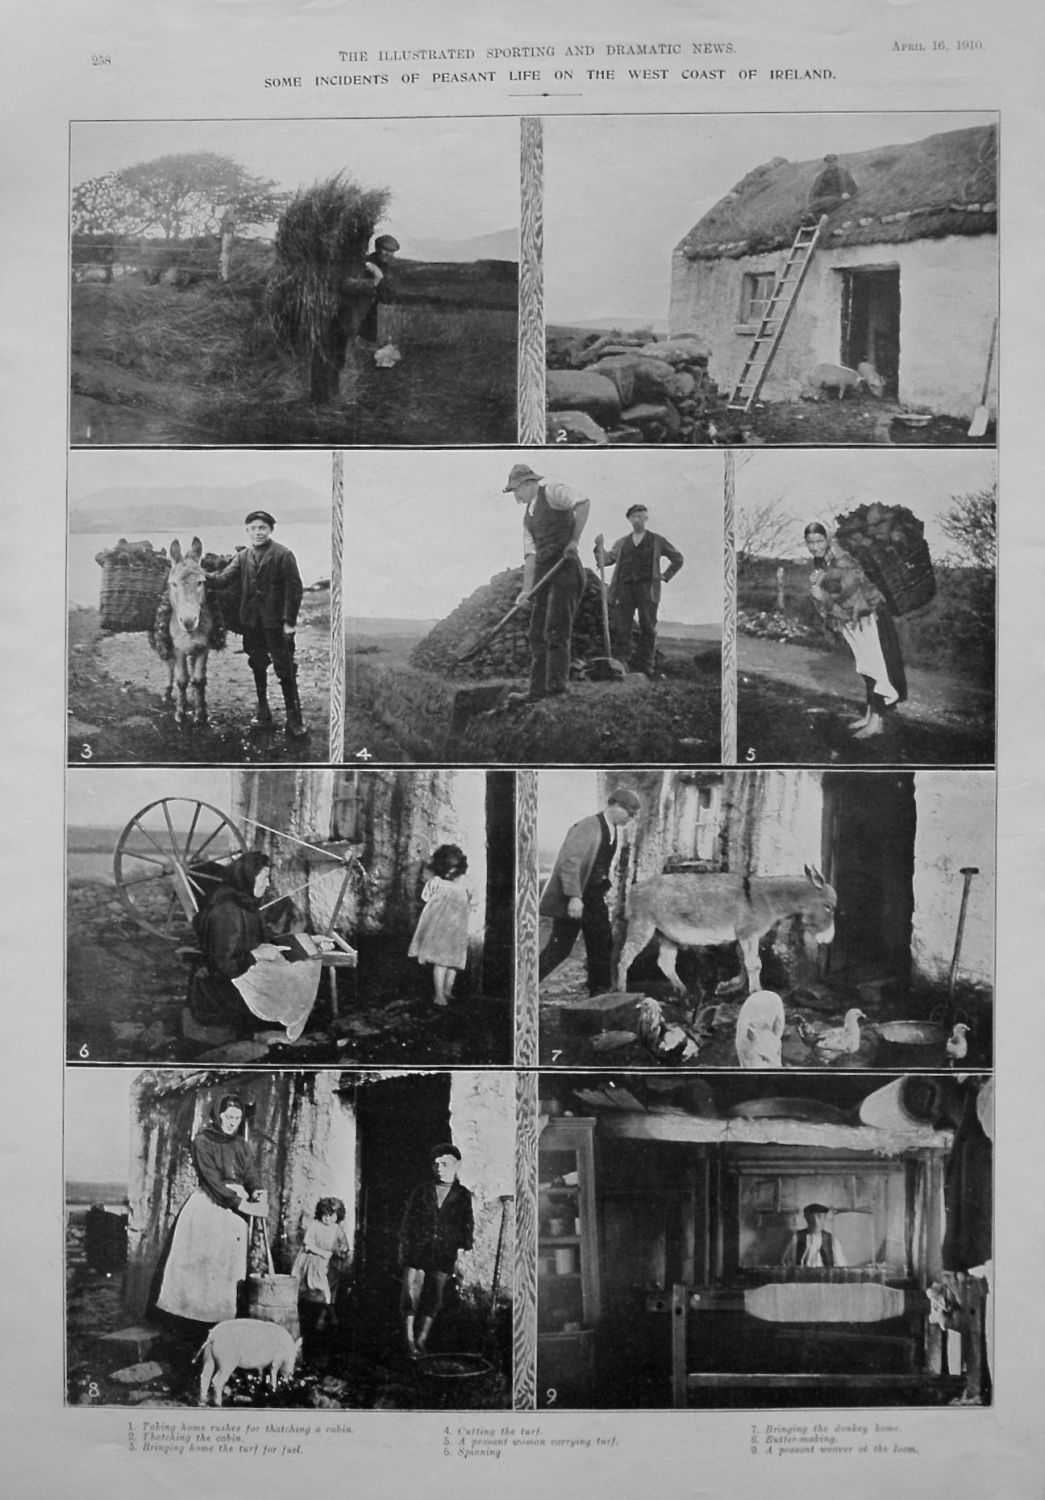 Incidents of Peasant Life on the West Coast of Ireland. 1910